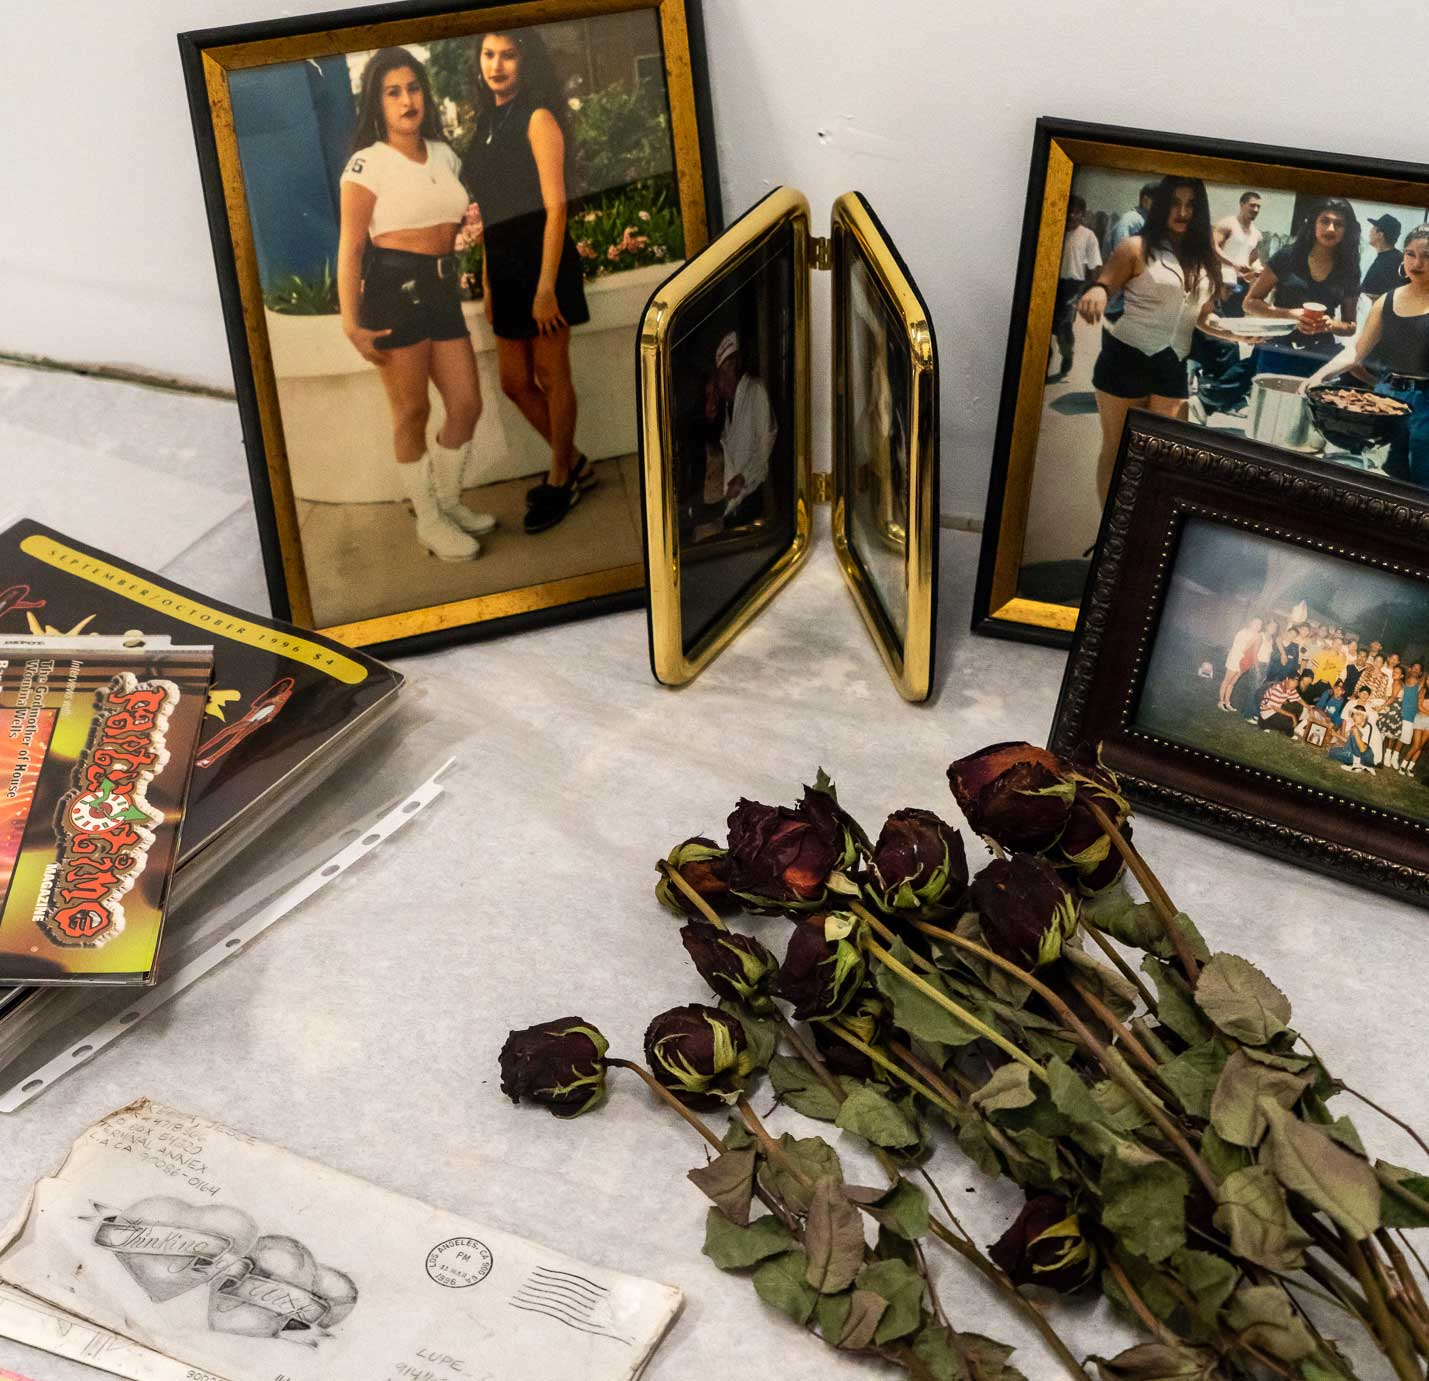 Photos, flowers, and letters forming a shrine